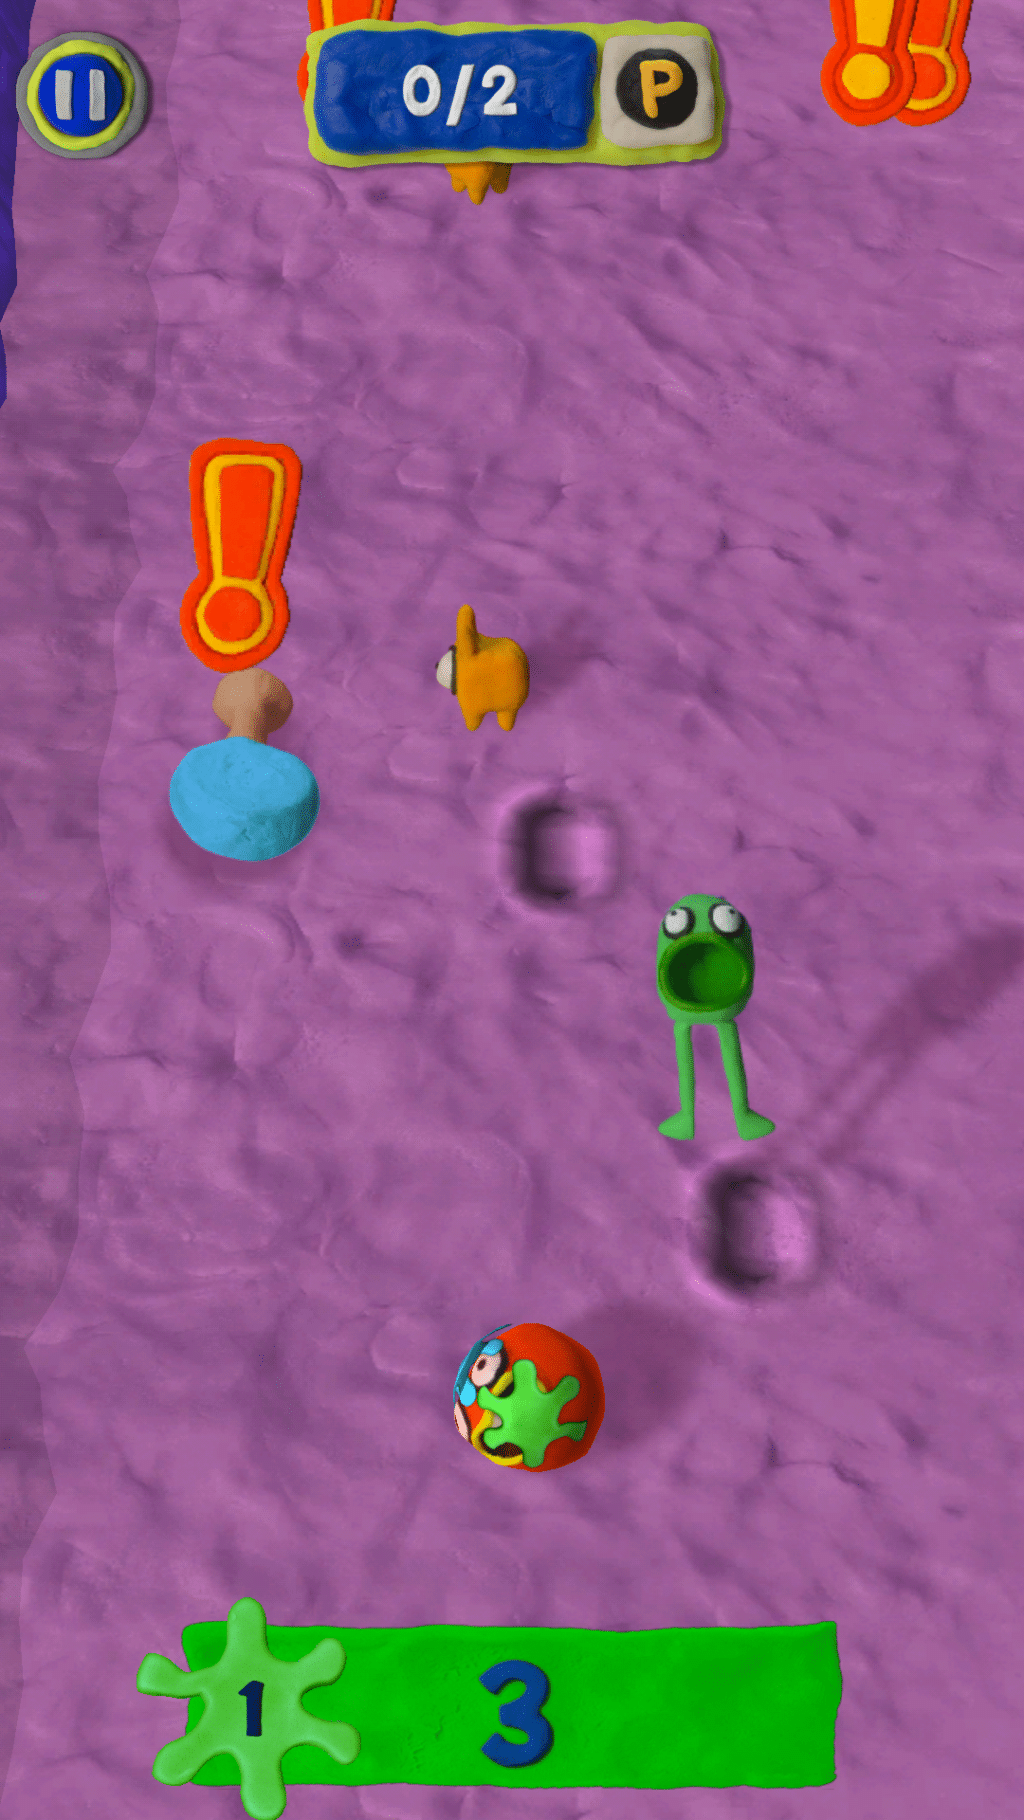 Play Doh Jam Obstacles